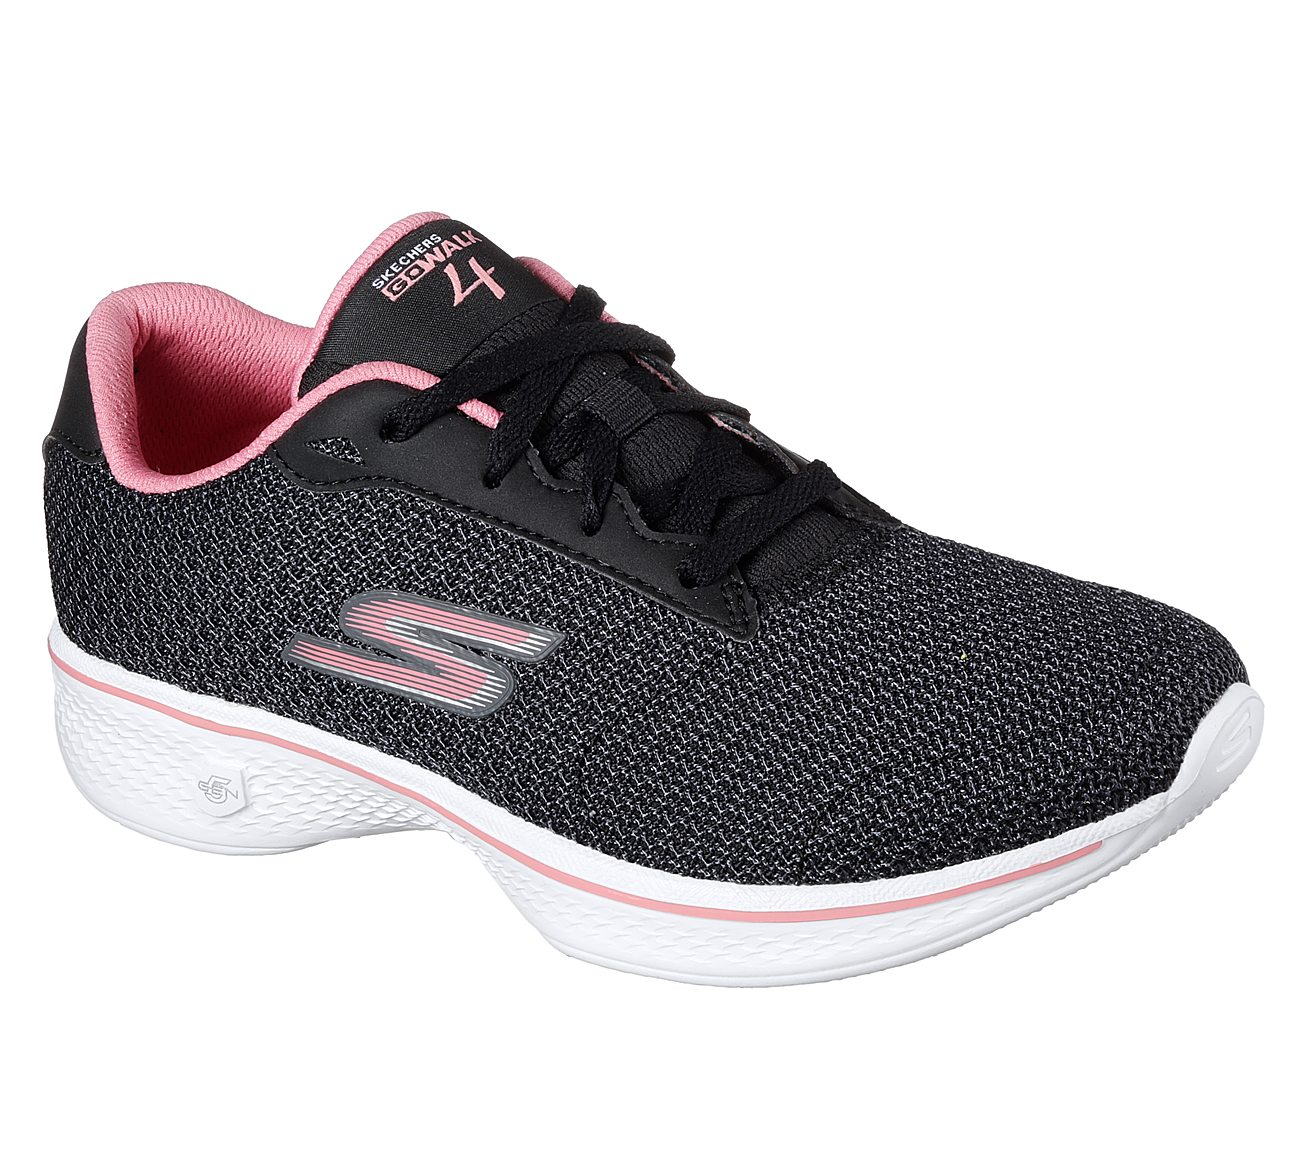 skechers walking shoes without less